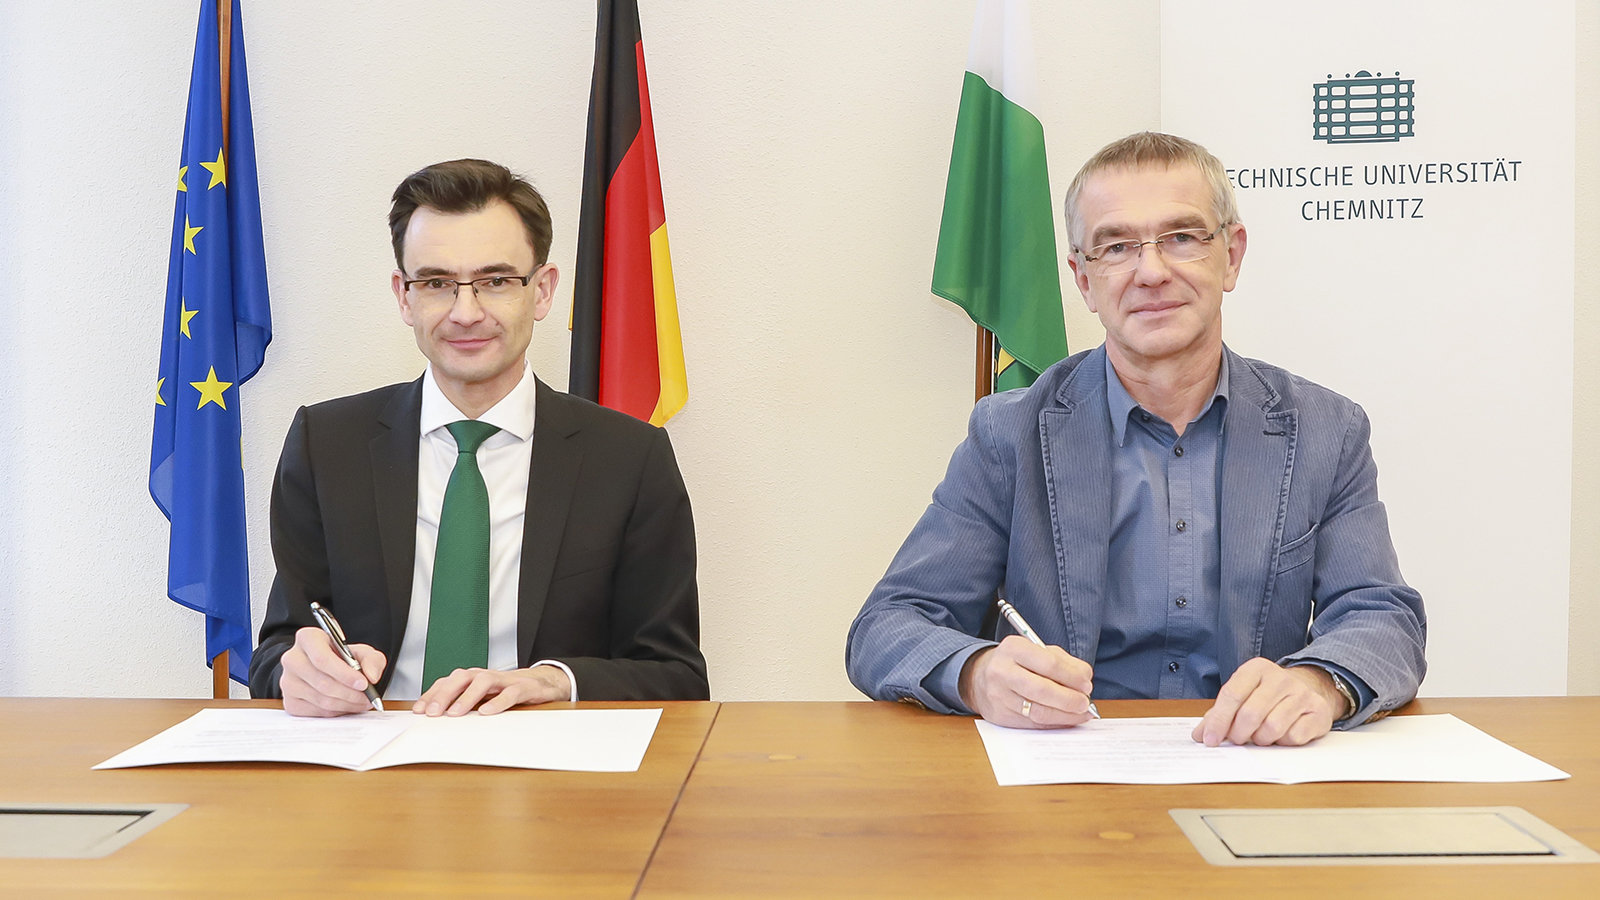 Prof. Gerd Strohmeier and Thomas Raschke sign an agreement